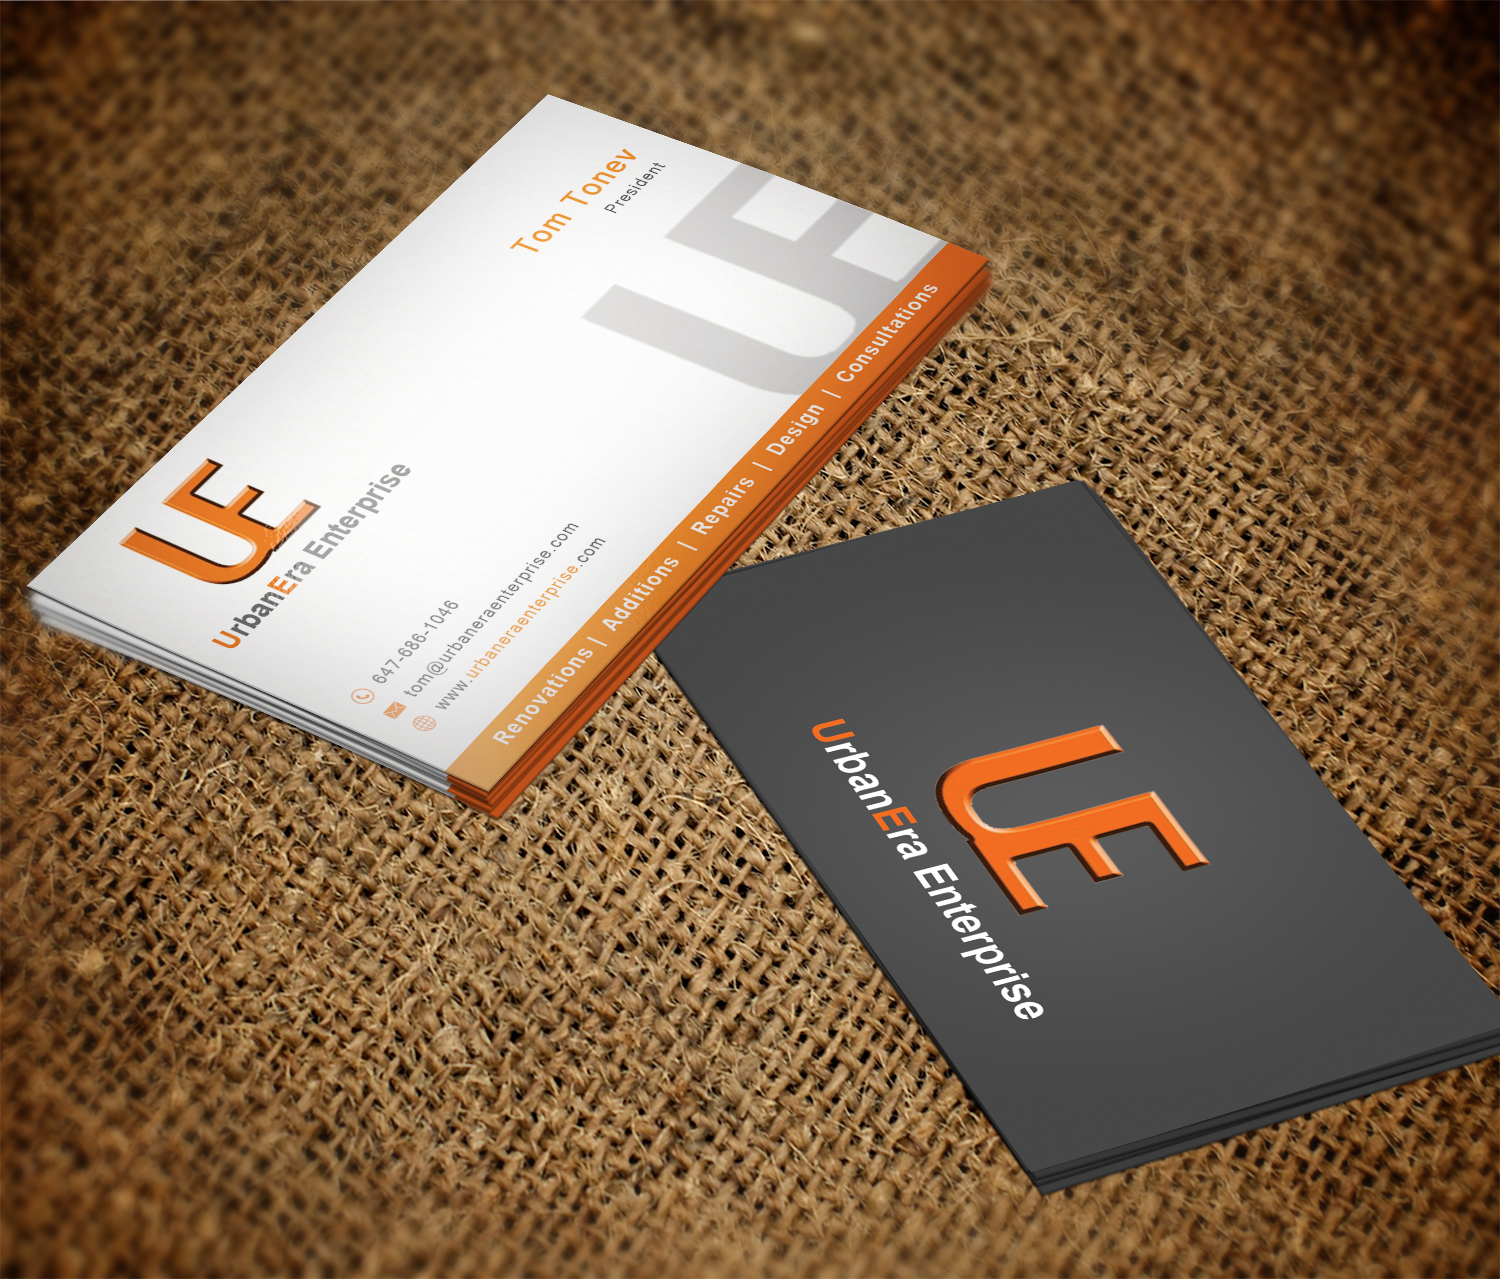 Modern professional business business card design for a company by business card design by imagine box for this project design 12814470 reheart Choice Image